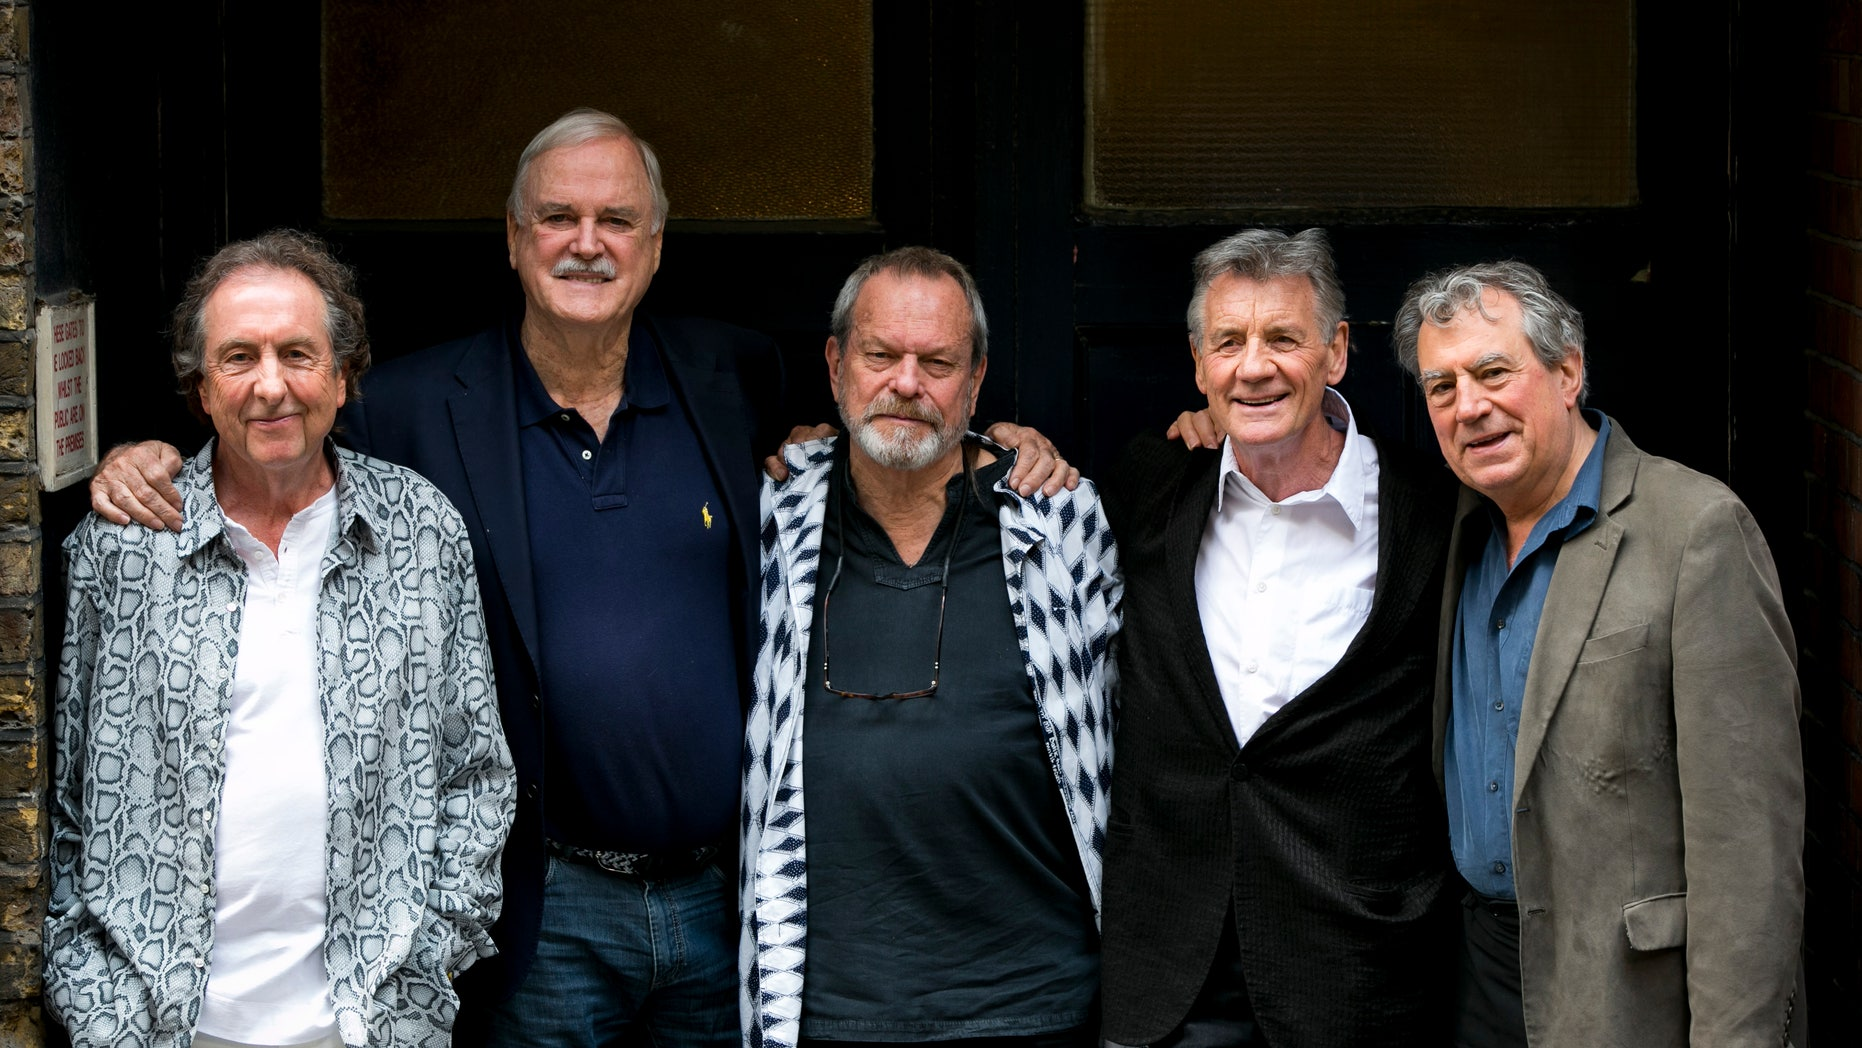 June 20, 2014. From left, Eric Idle, John Cleese, Terry Gilliam, Michael Palin and Terry Jones of the comedy group Monty Python pose for photographers during a photo call in London.